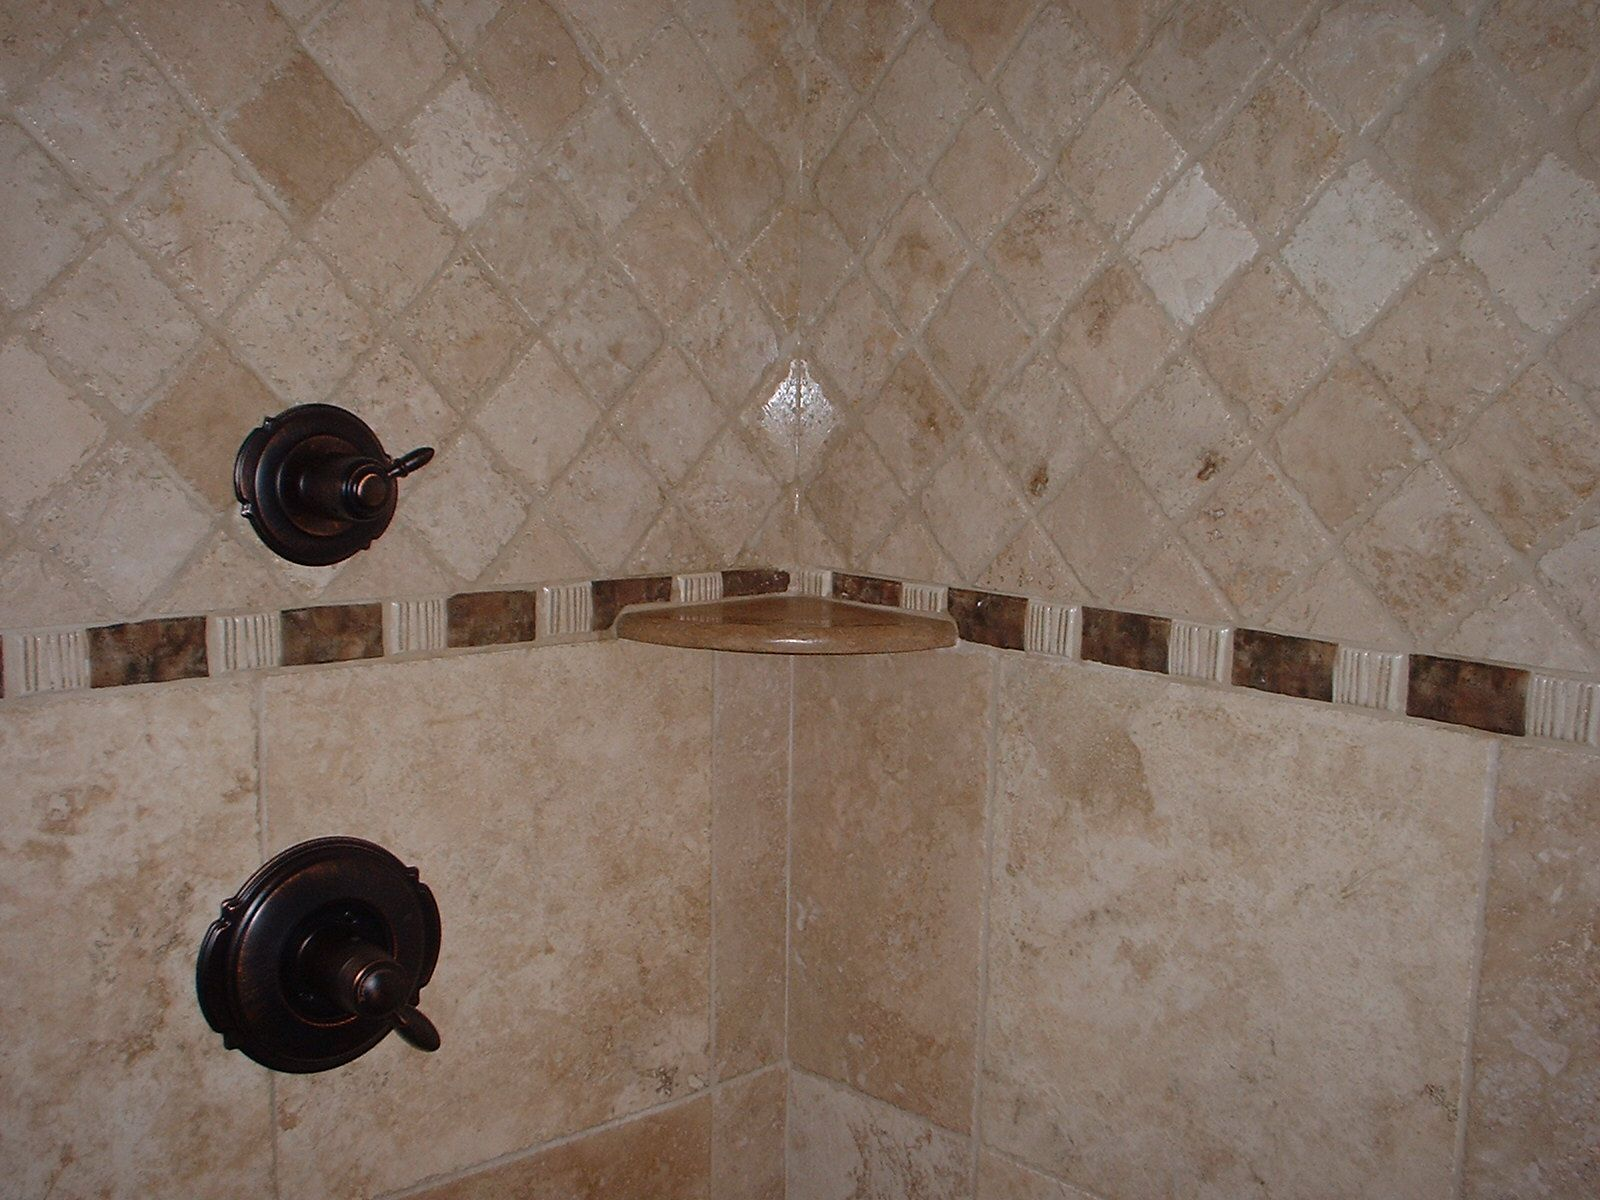 Bathroom Tiles Design Ahmedabad : Shower tile ideas travertine with custom